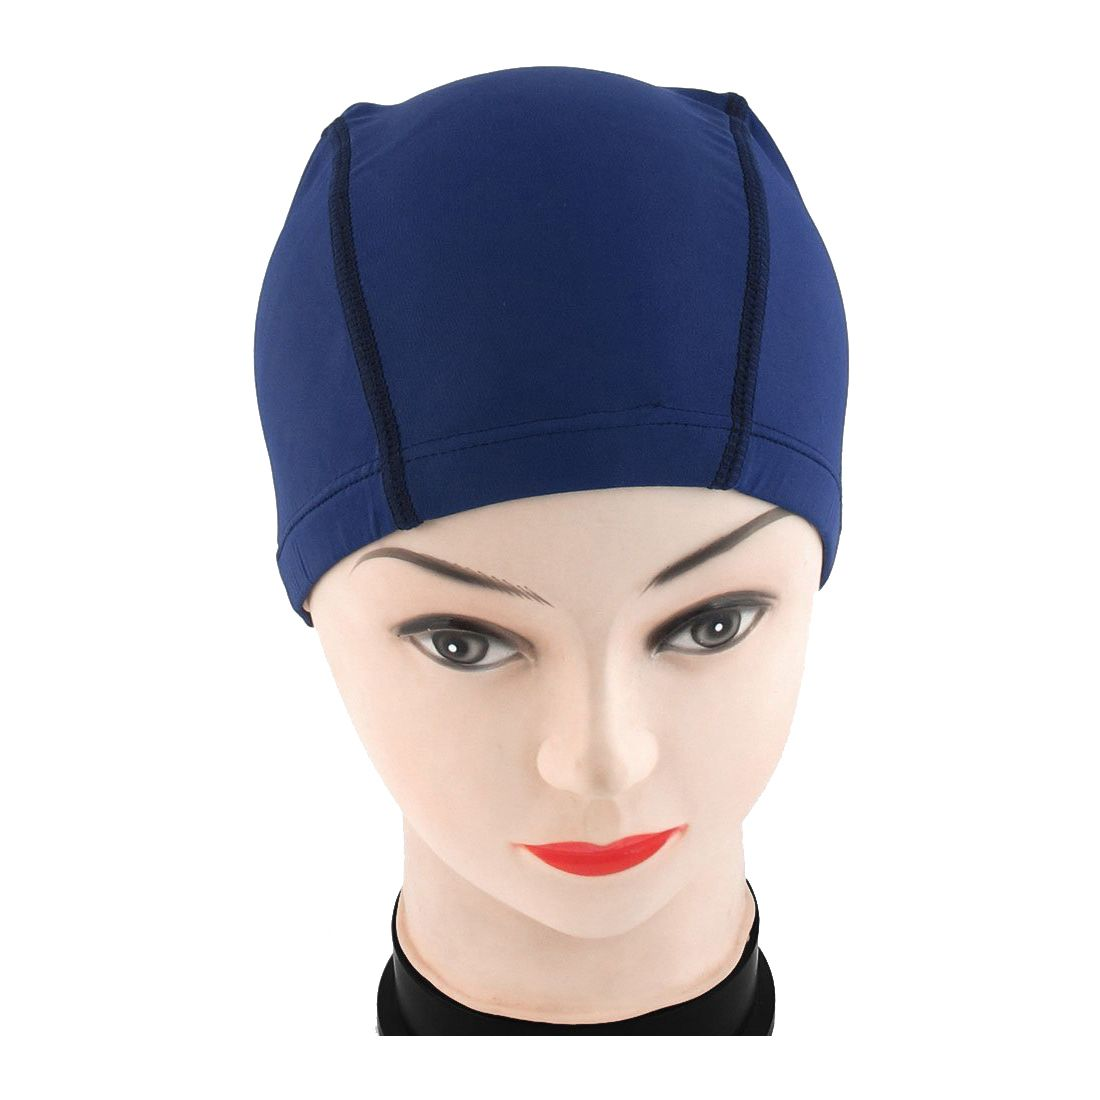 60c3d694068 Polyester Men Women Sporty Flexible Cloth Swimming Cap Swim Hat Blue-in Swimming  Caps from Sports & Entertainment on Aliexpress.com | Alibaba Group